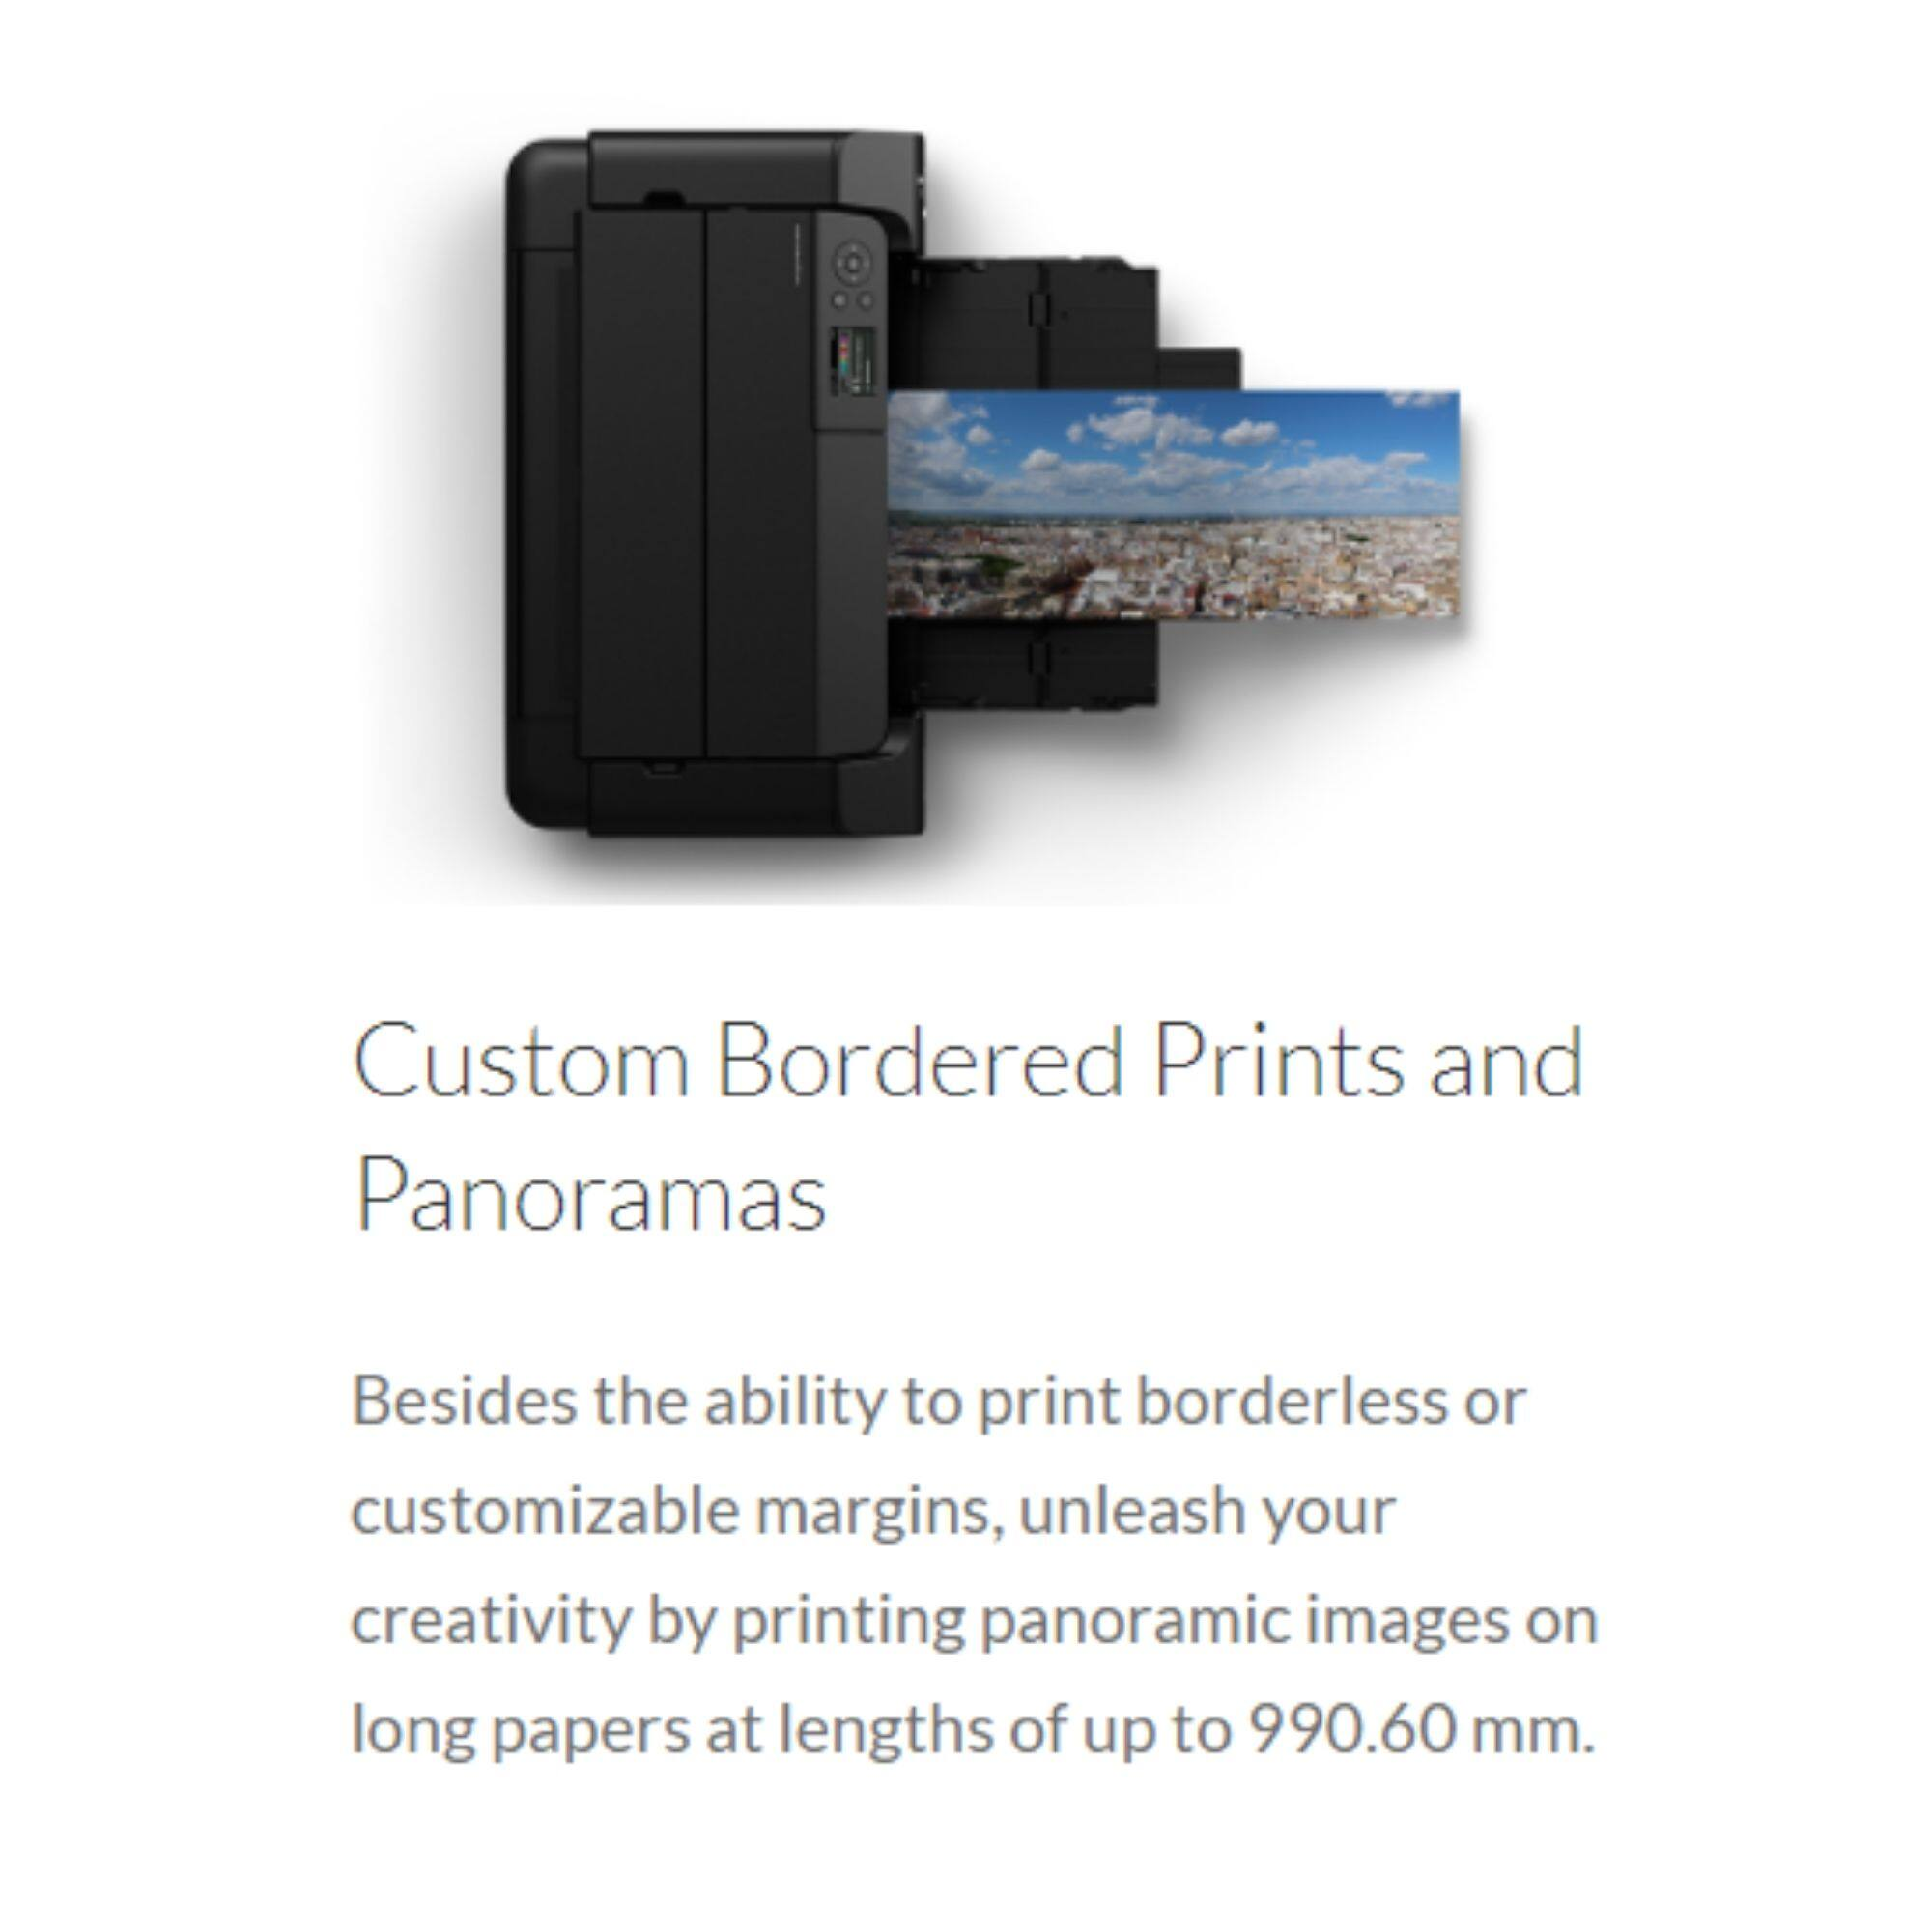 Canon Pixma Pro-300 A3+ Size Professional Photo Printer ( With Wifi / Ethernet / Airprint / 10 colors ink system )